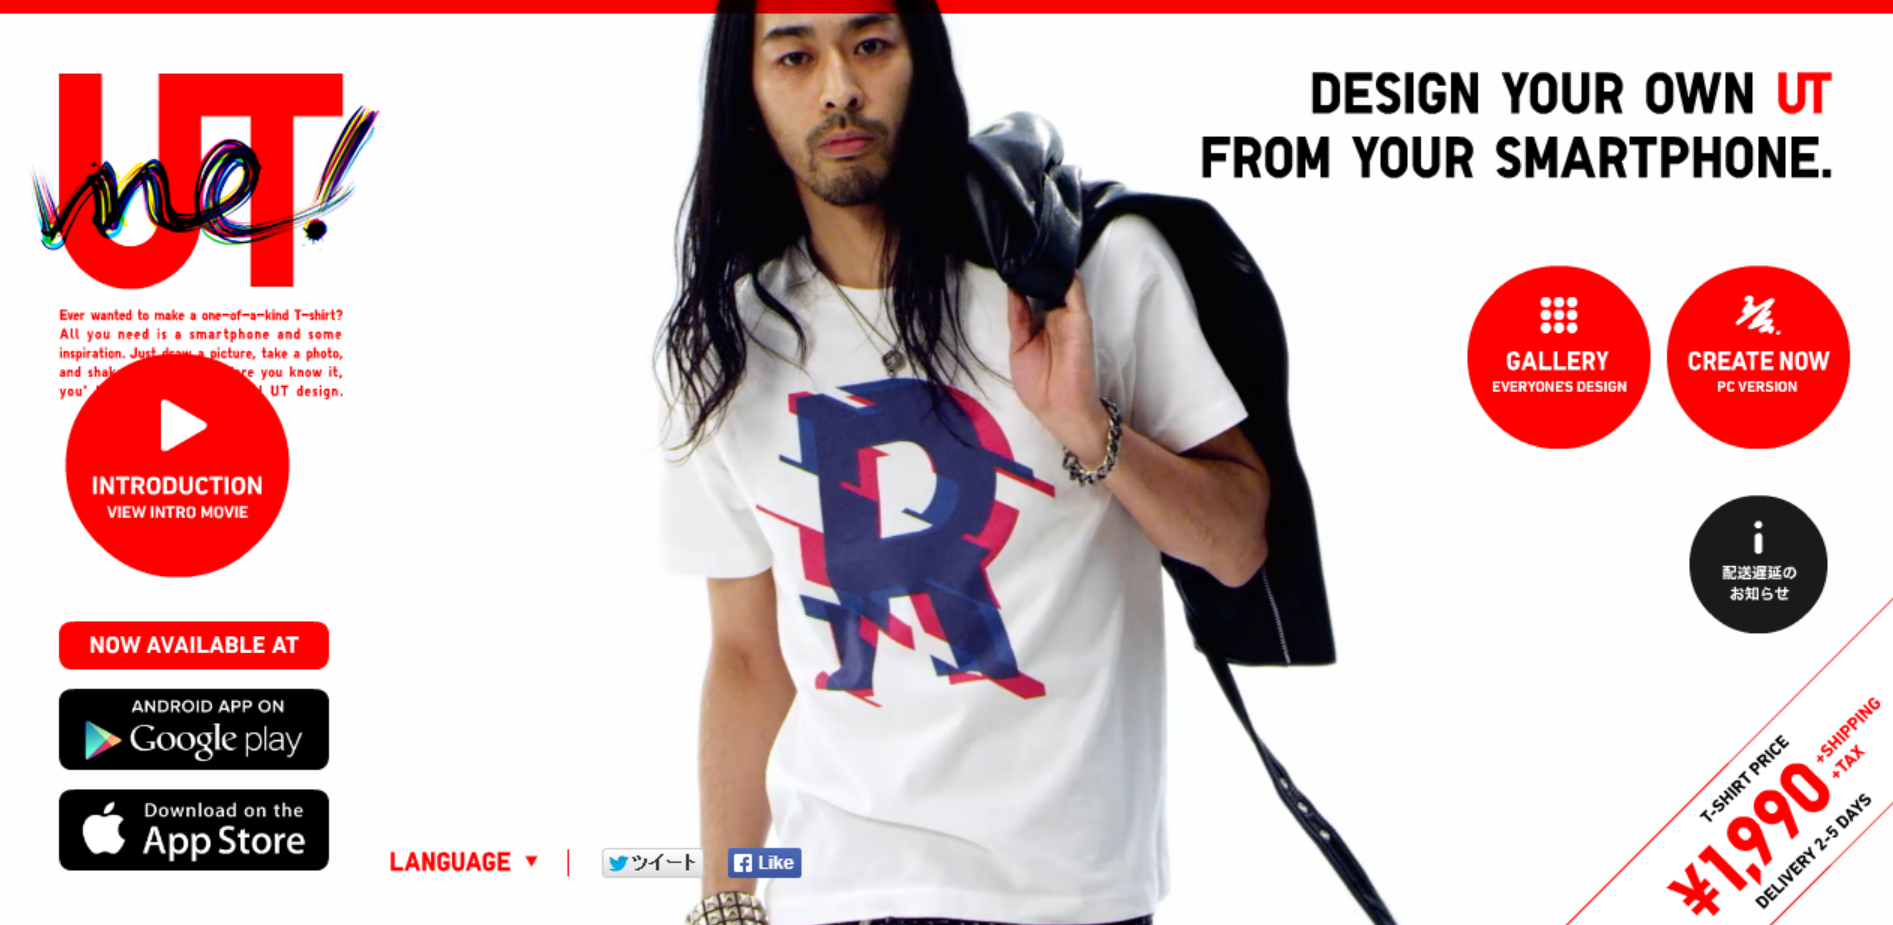 Pin By Onion Kung On Fyp Shirt Booth Promo Poster Idea Uniqlo High Fashion Street Style App